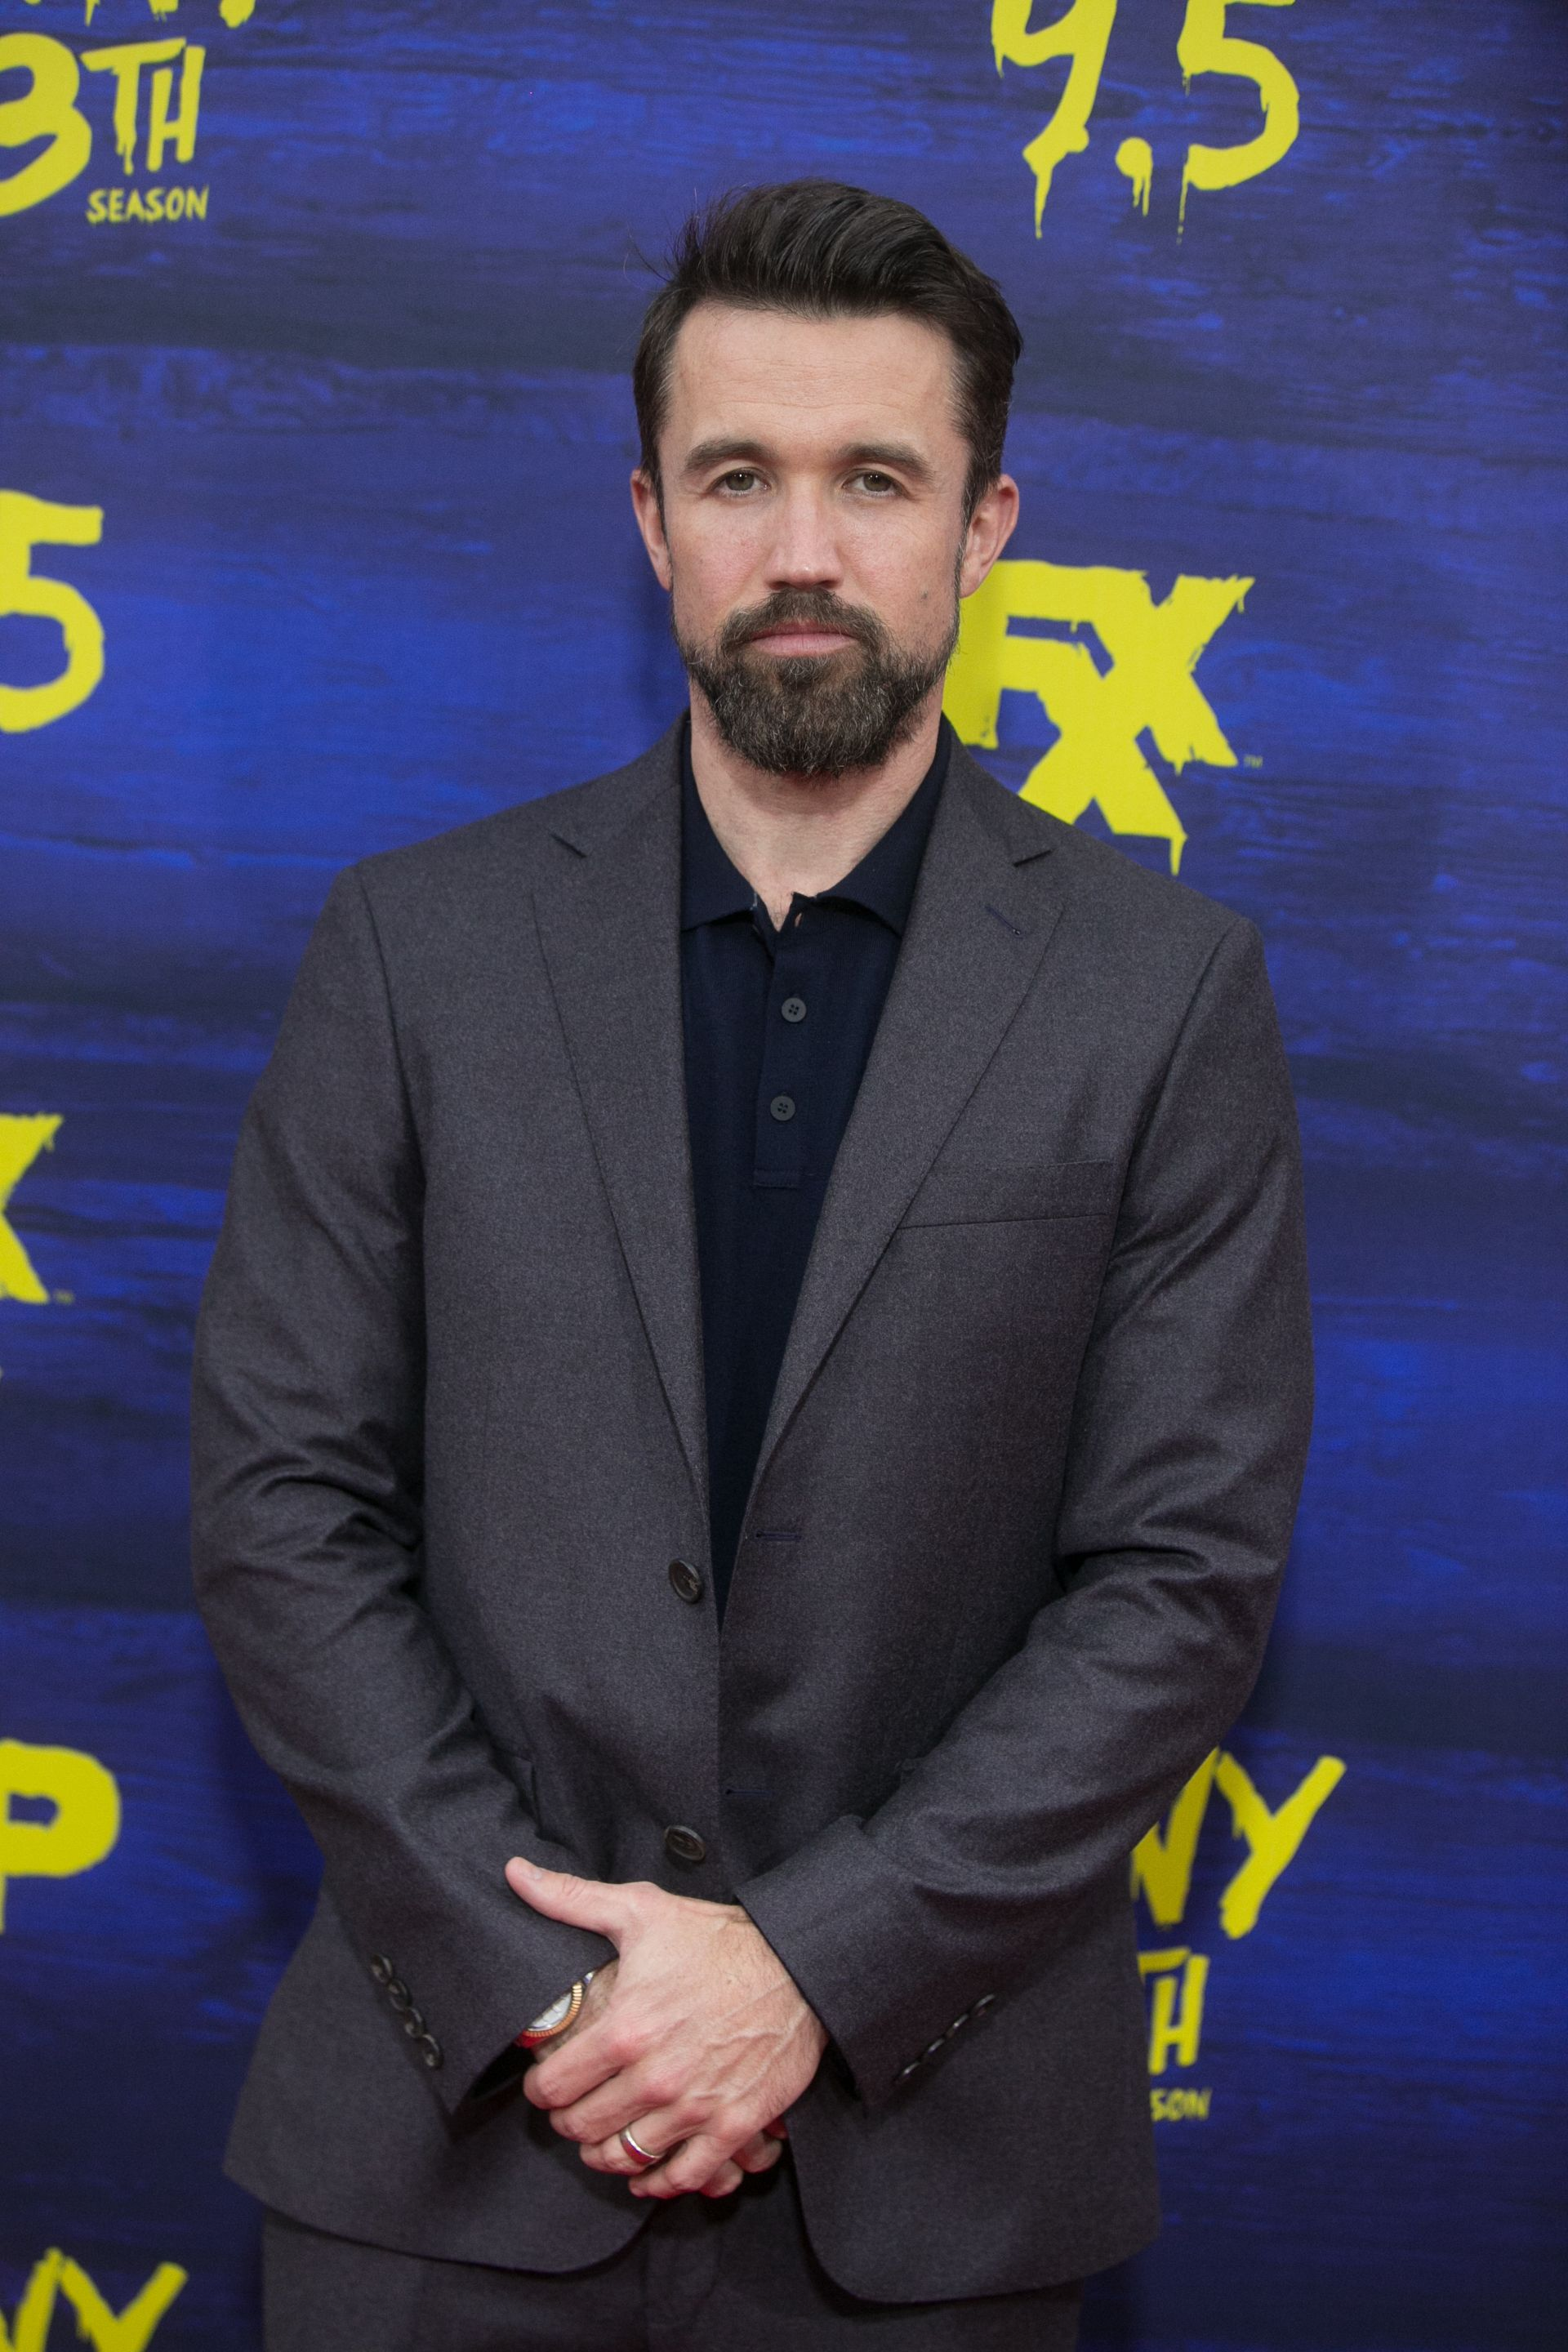 Rob McElhenney Just Explained Why It Took Mac So Long to Come Out on 'Always Sunny'